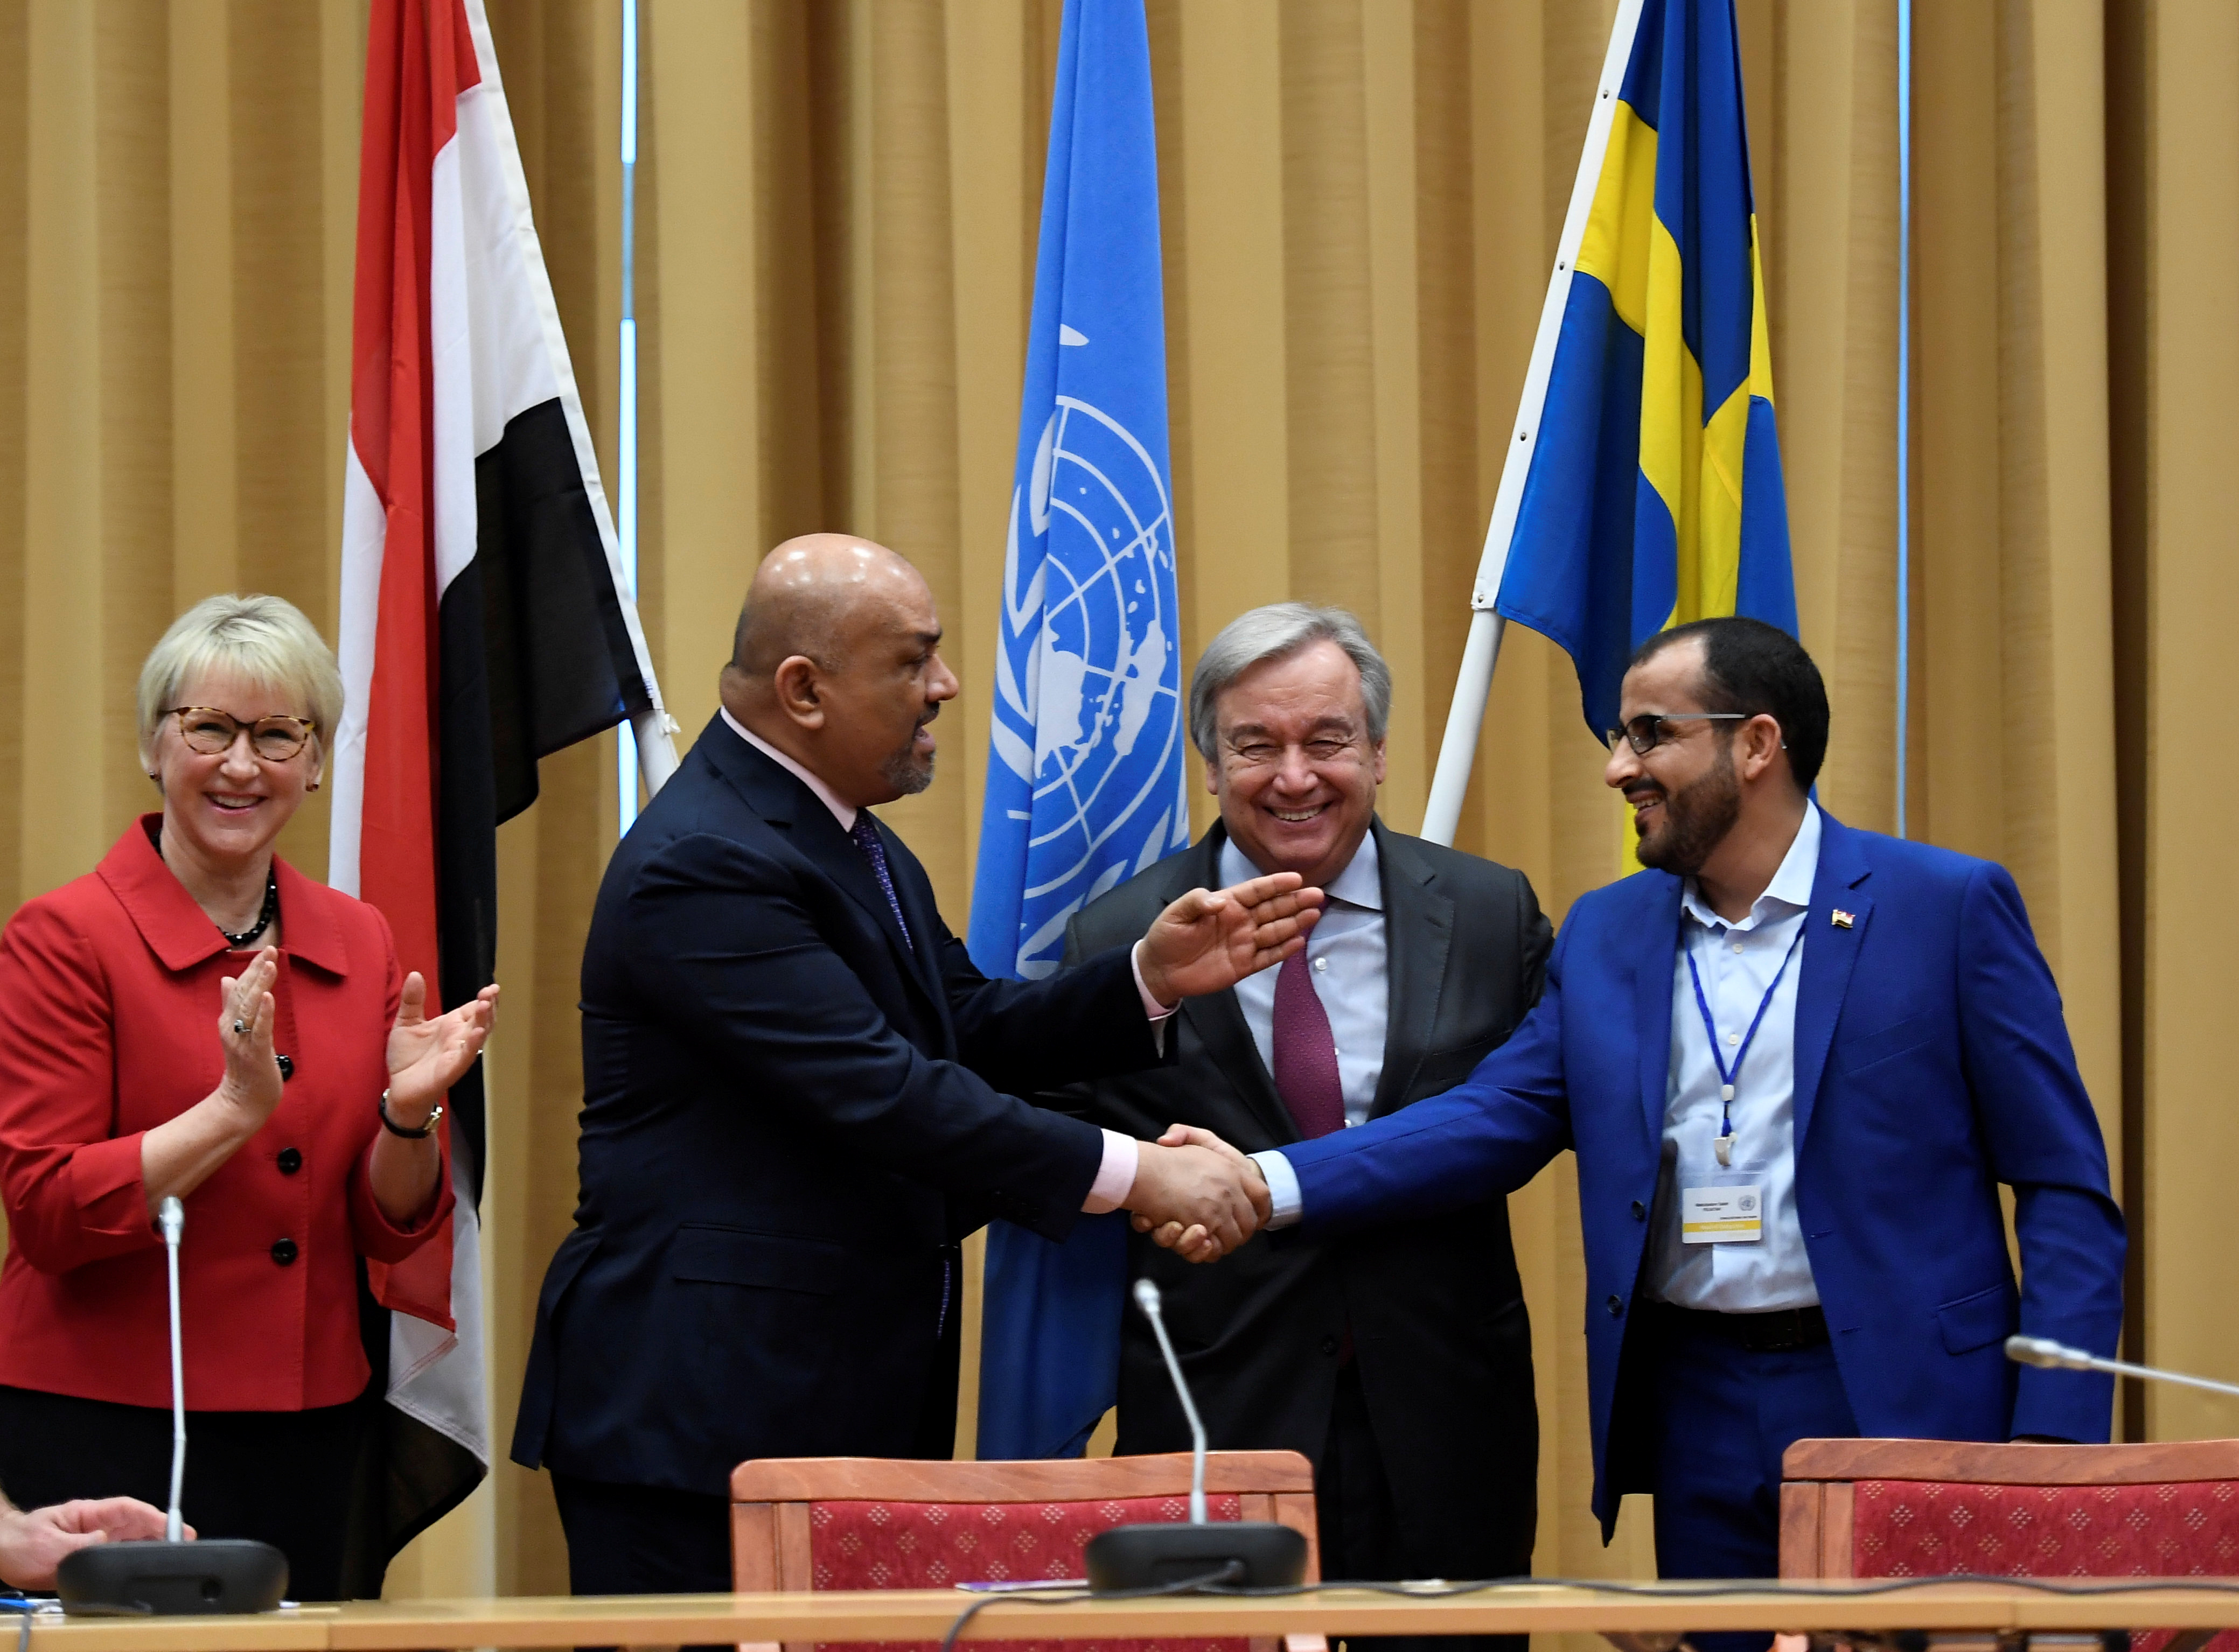 Head of Houthi delegation Mohammed Abdul-Salam (R) and Yemeni Foreign Minister Khaled al-Yaman (2 L) shake hands next to United Nations Secretary General Antonio Guterres and Swedish Foreign Minister Margot Wallstrom (L), during the Yemen peace talks...